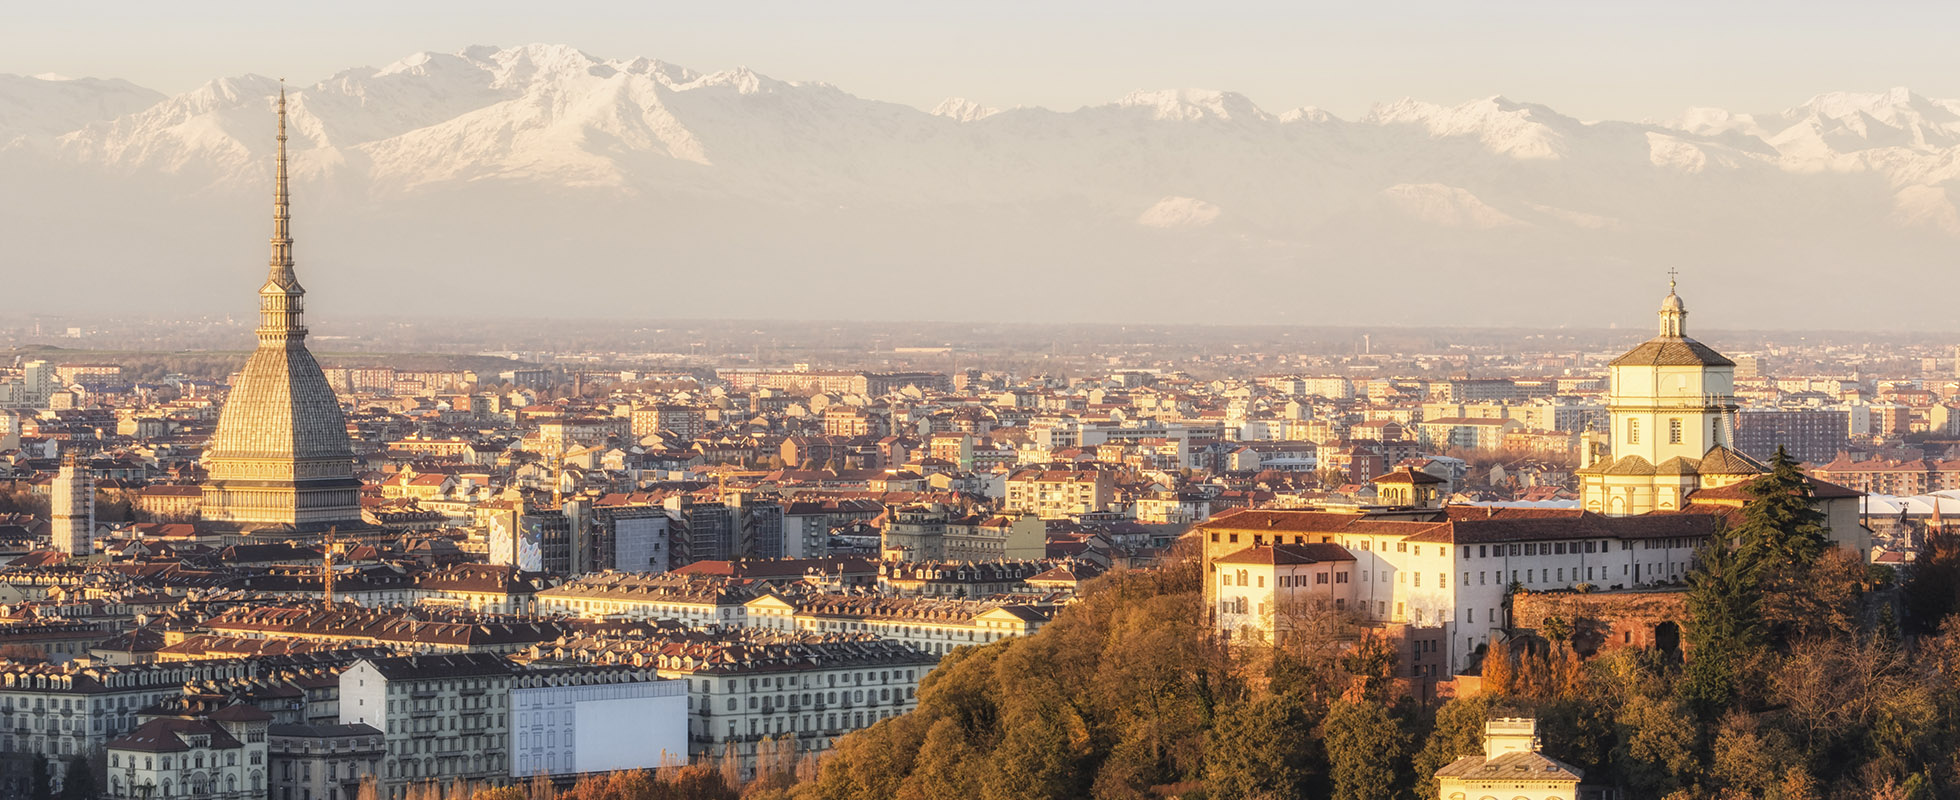 turin italy best places to eat drink sleep olive